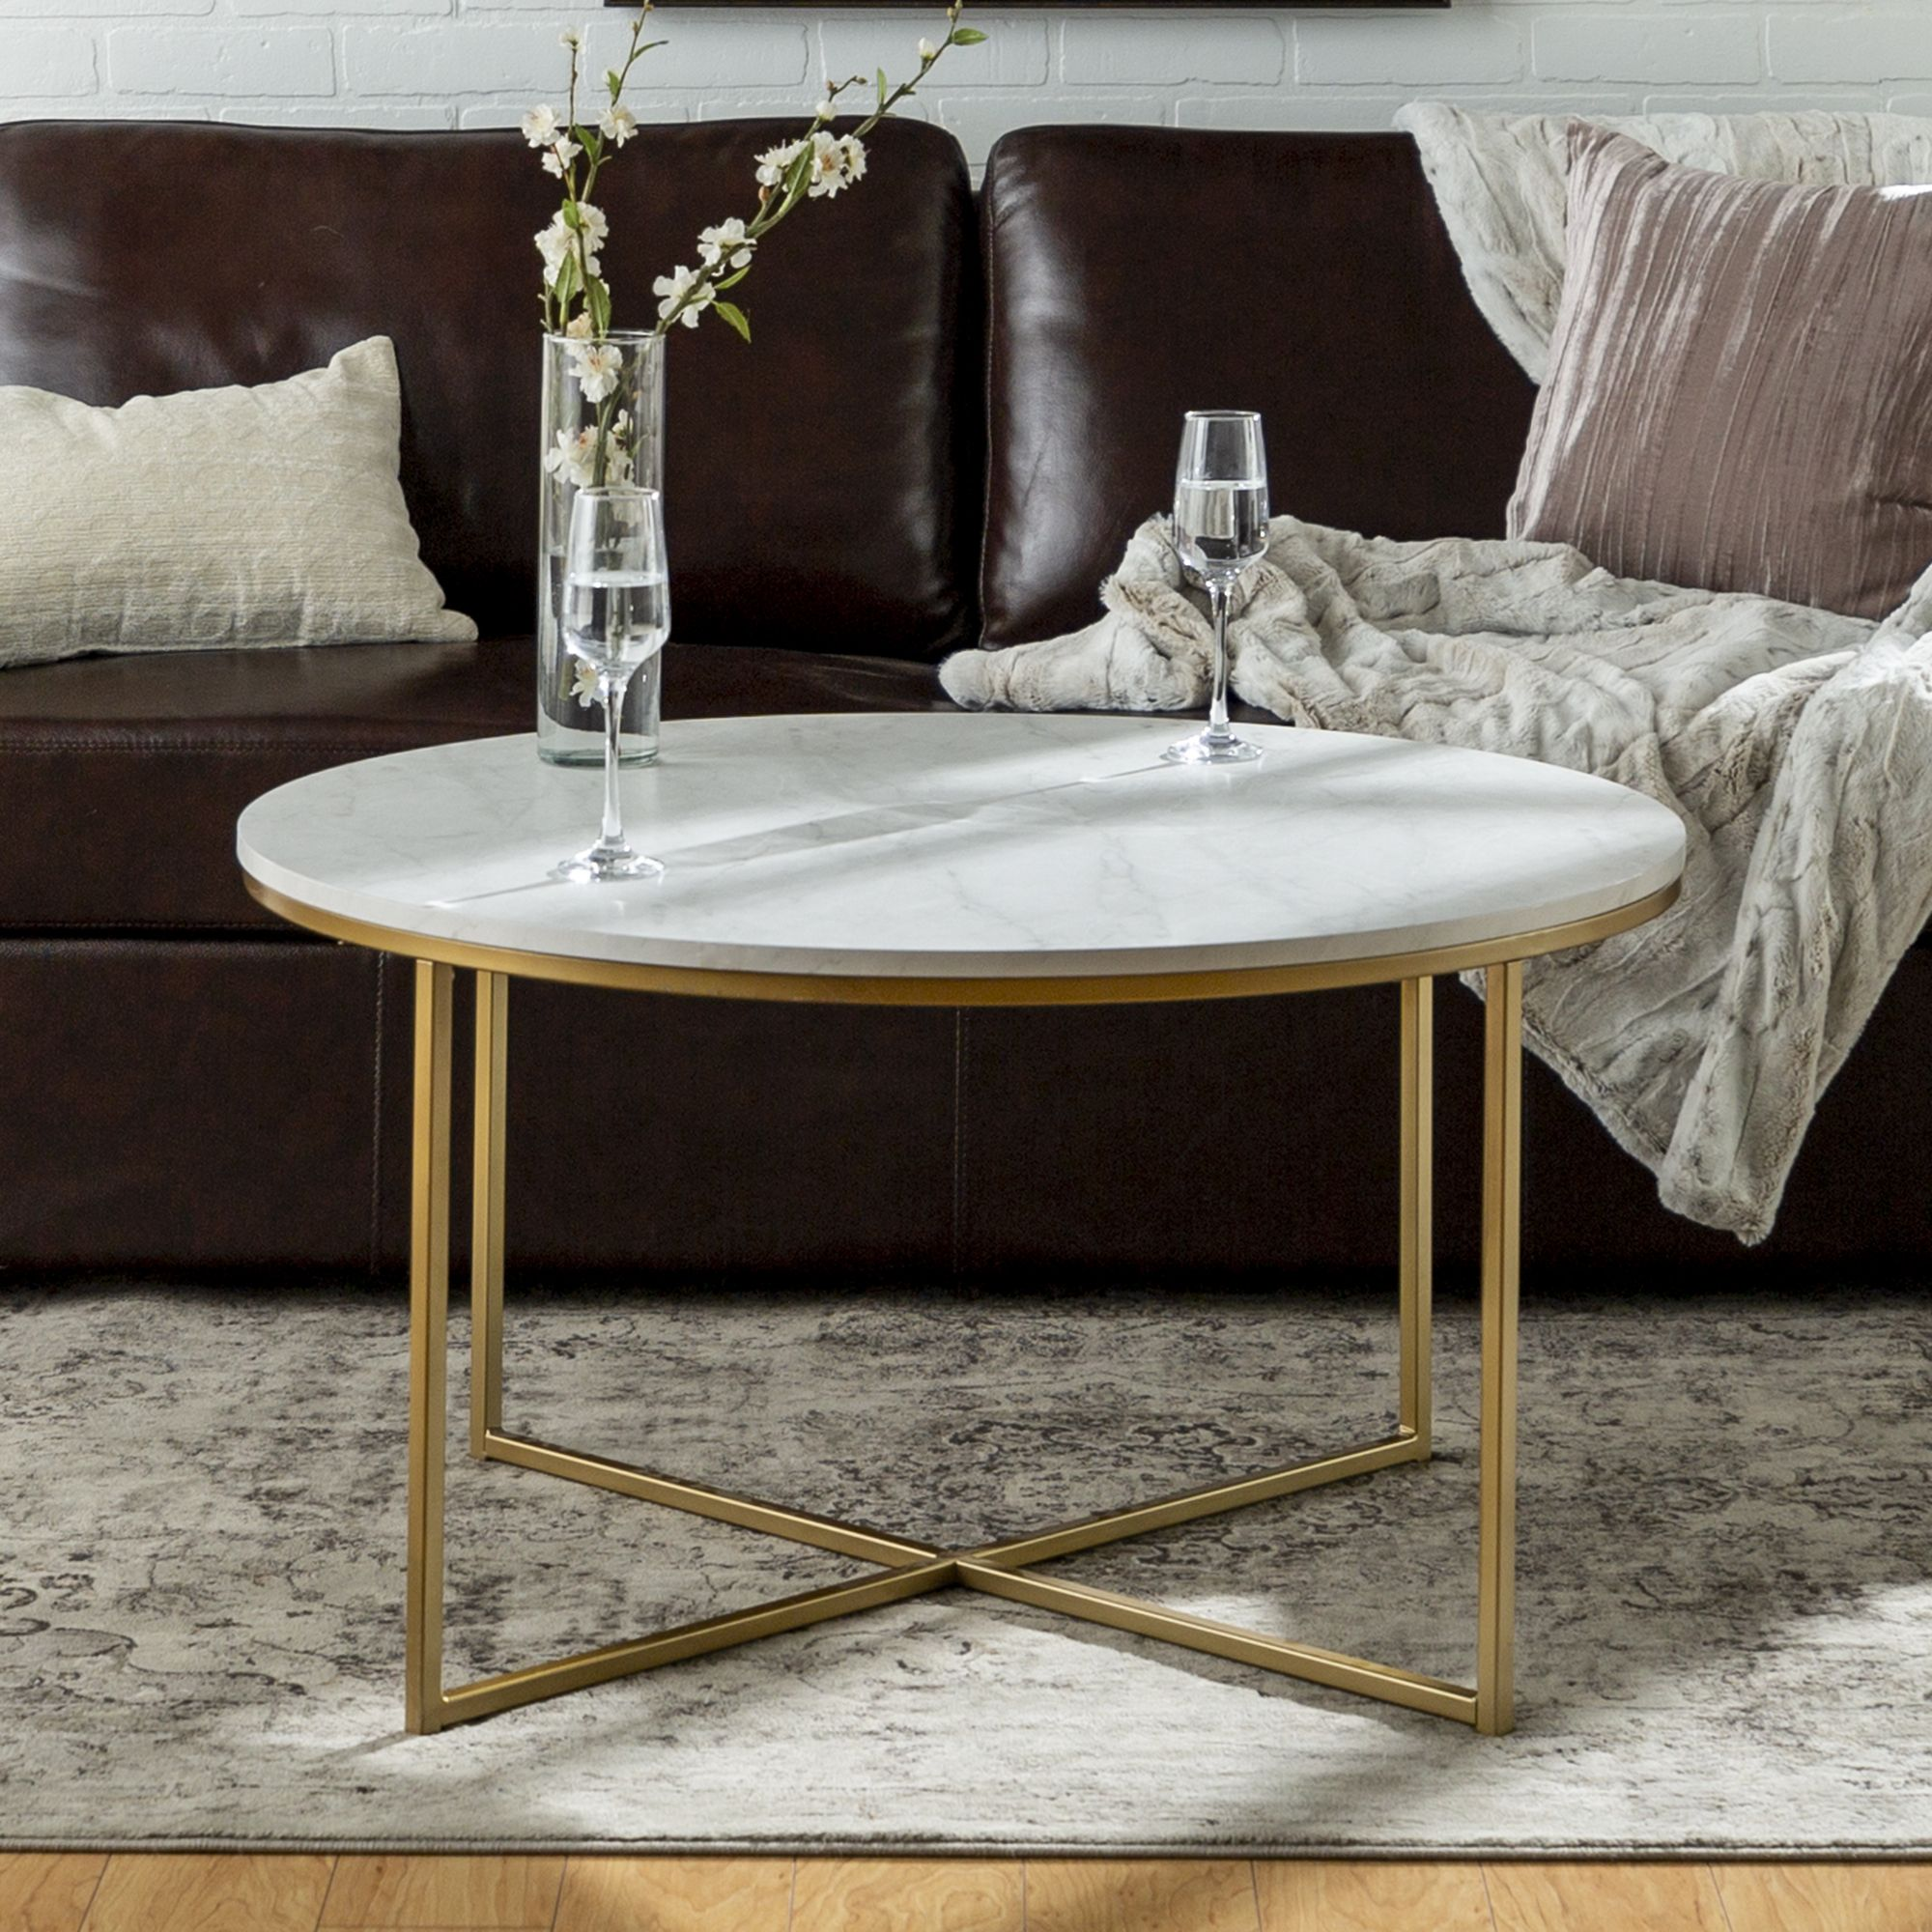 Ember Interiors Daisy Faux Marble And Gold Round Coffee Table Marble Gold Walmart Com Coffee Table Round Gold Coffee Table Round Coffee Table [ 2000 x 2000 Pixel ]